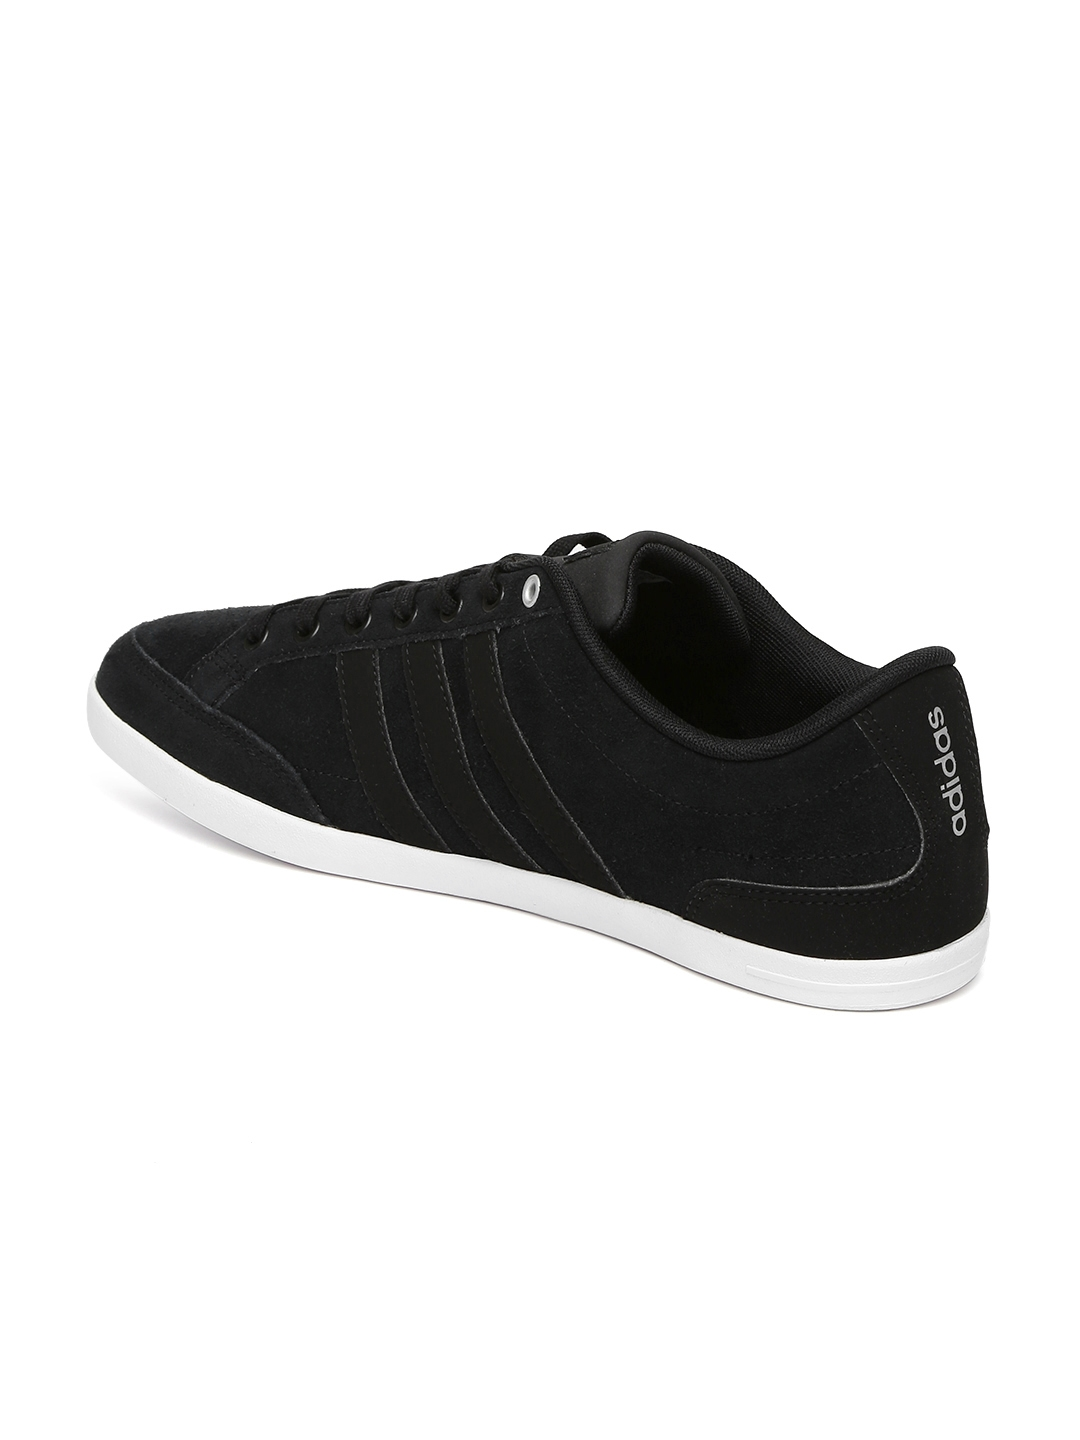 hot sale online db109 1a208 ADIDAS NEO Men Black CAFLAIRE Sneakers